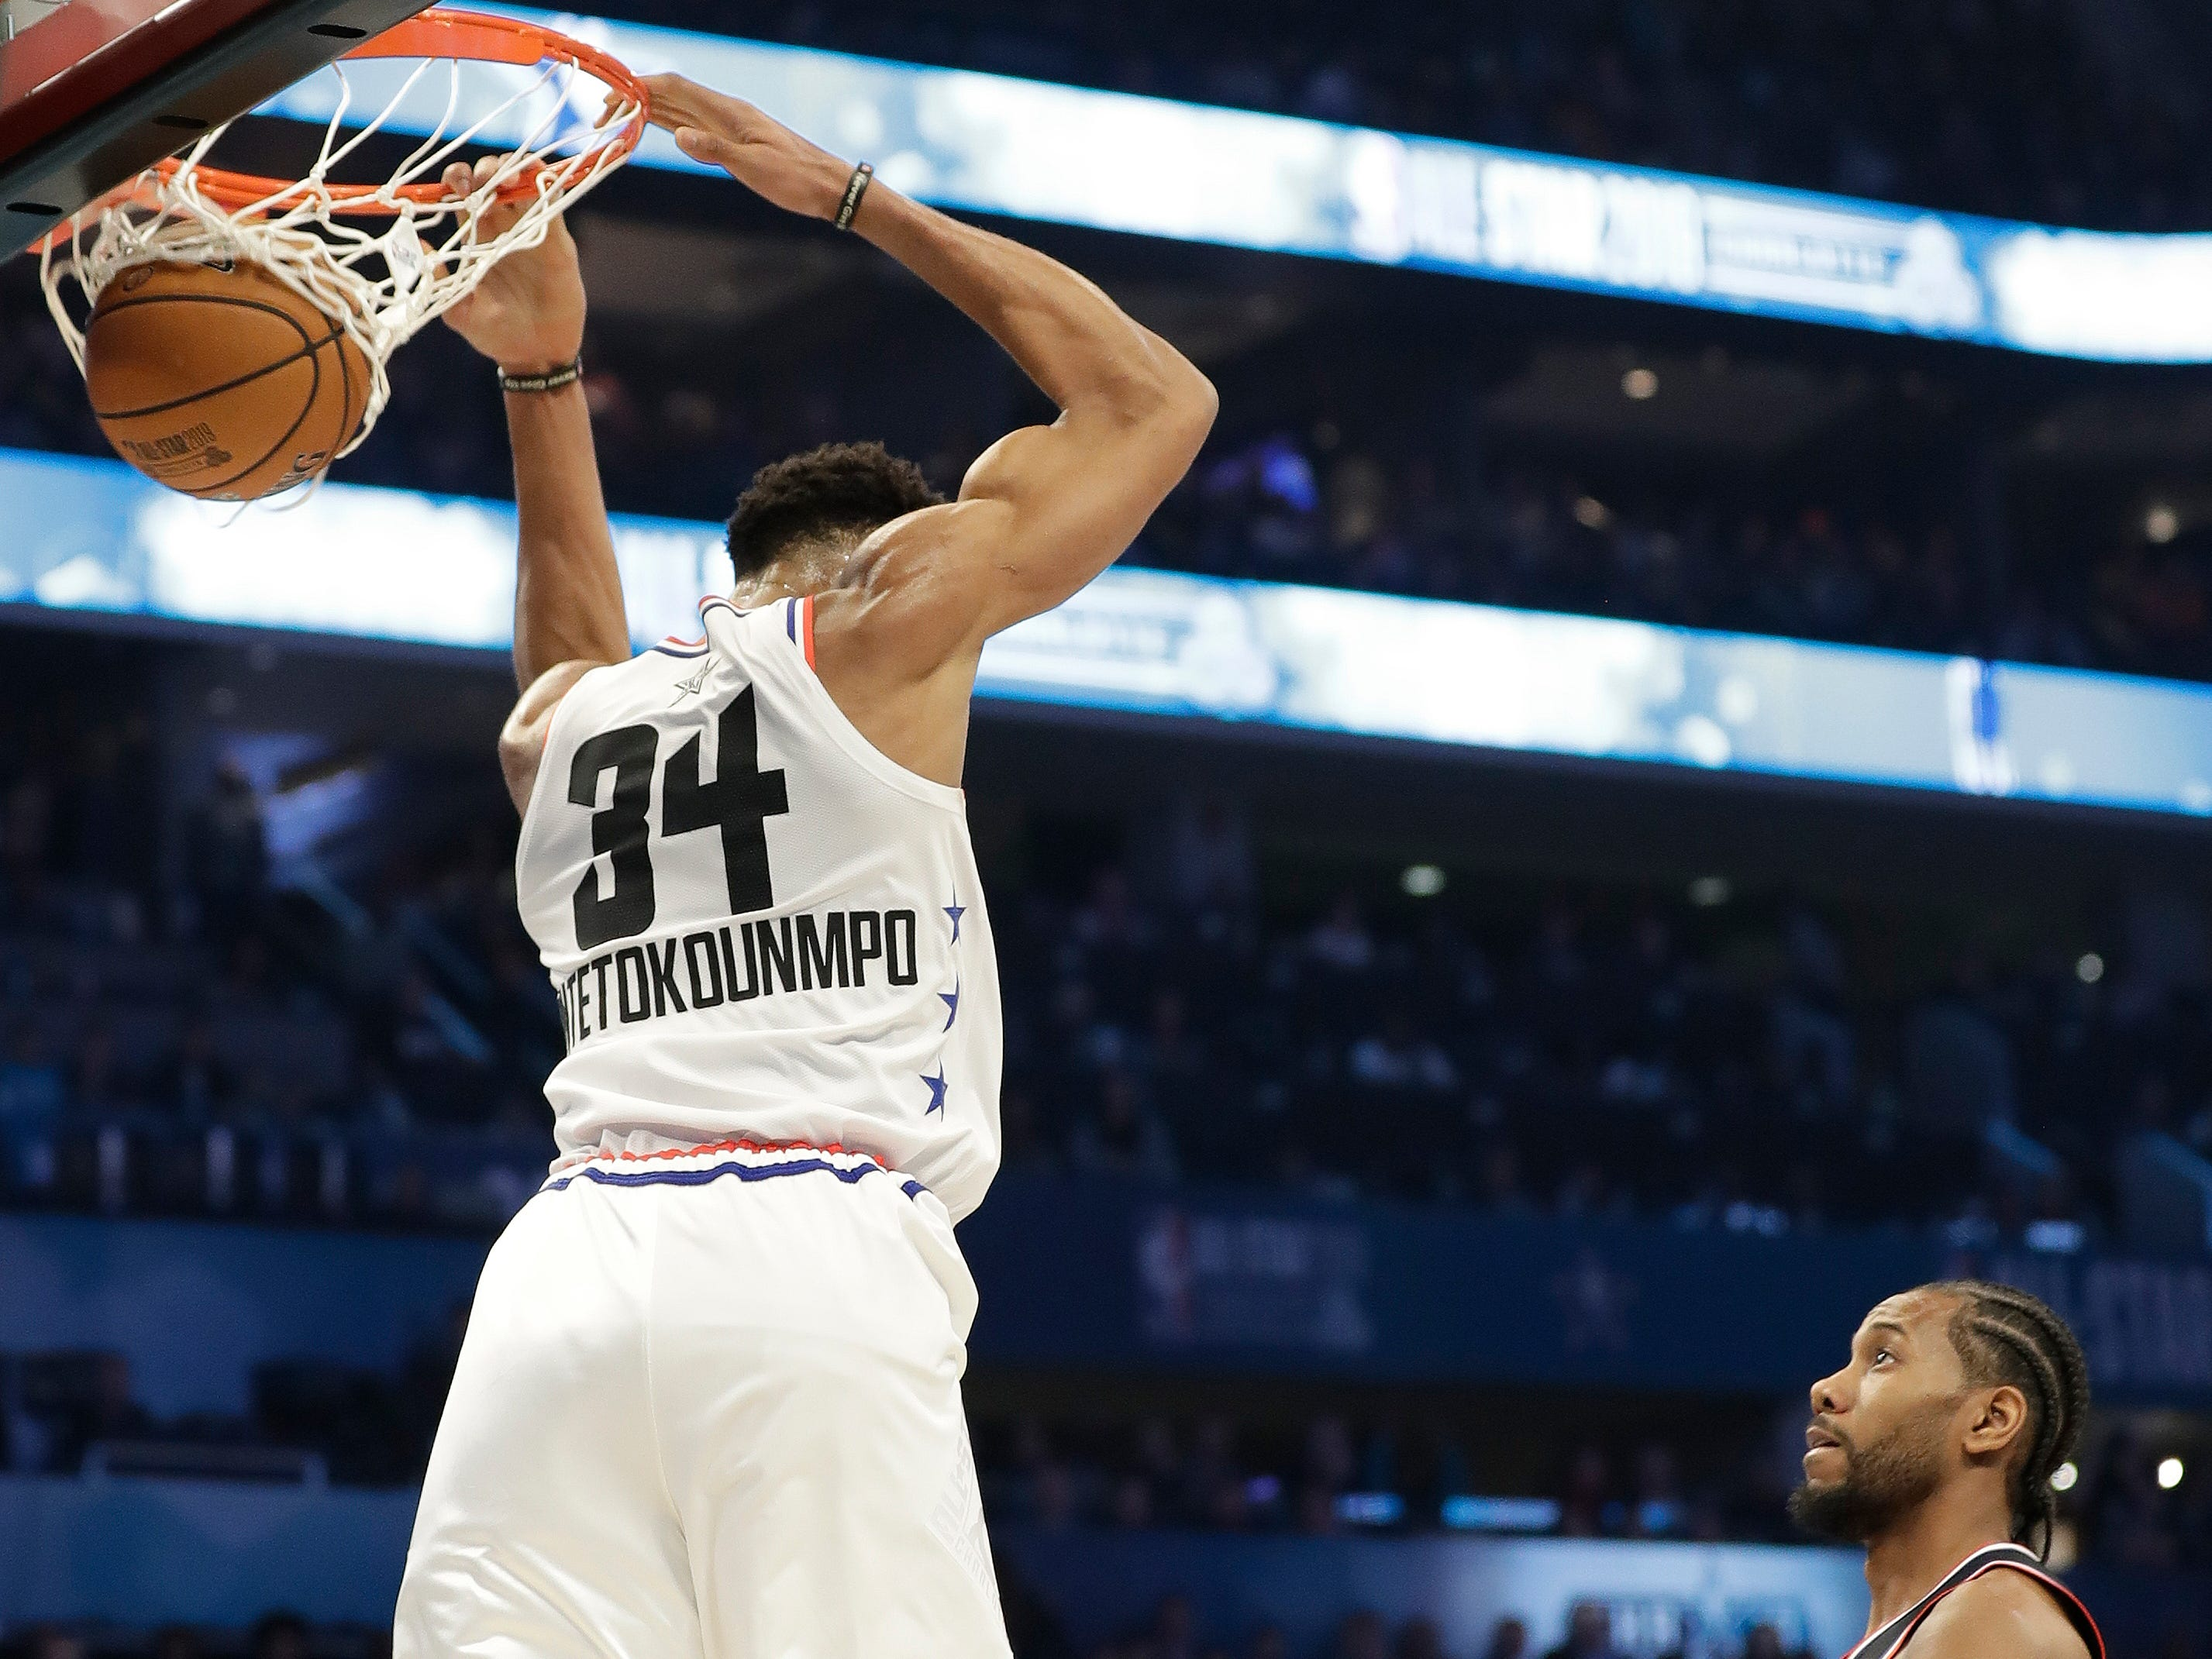 Giannis Antetokounmpo dunks over his head in the first half on Sunday night.